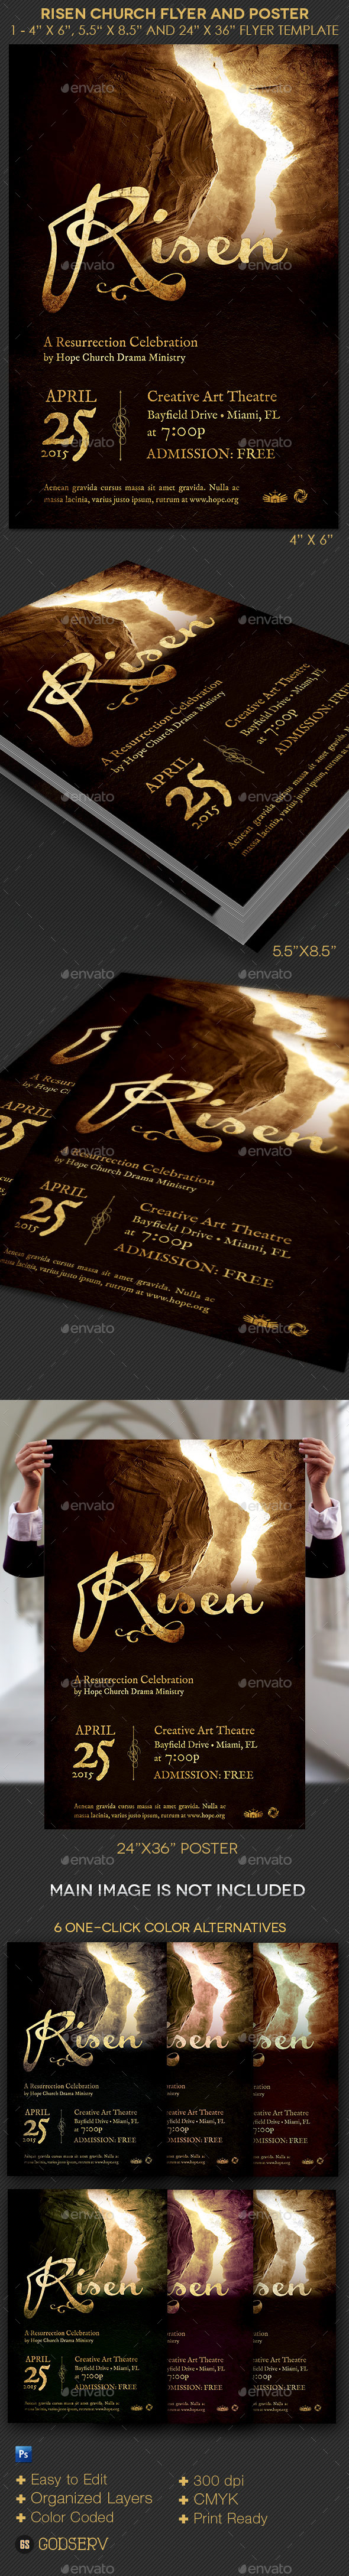 GraphicRiver Risen Church Flyer and Poster Template 10878464